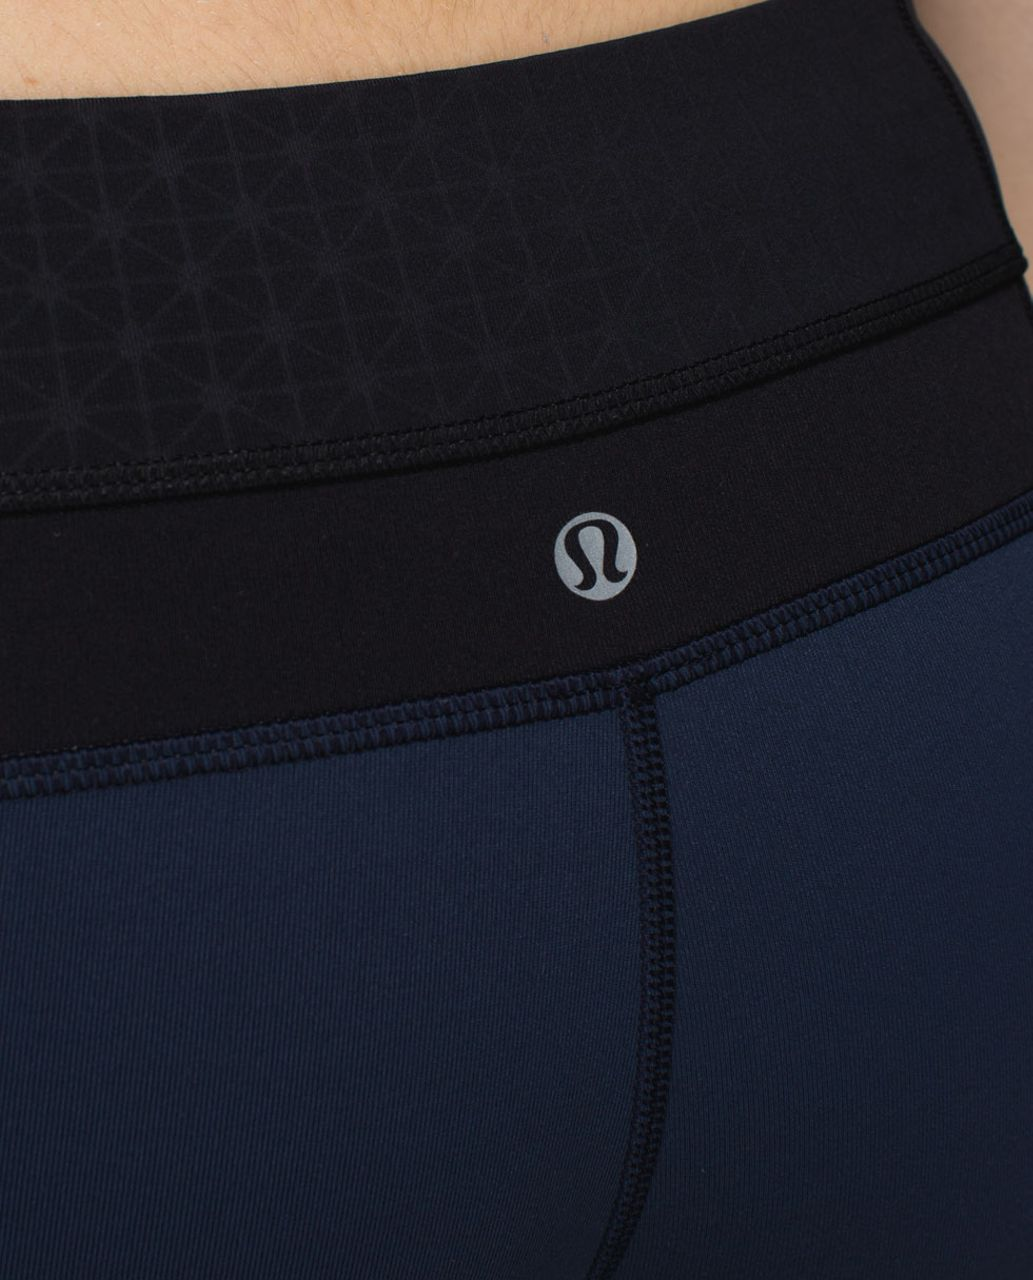 Lululemon Groove Pant *Full-On Luon (Regular) - Inkwell / Tri Geo Embossed Black / Black